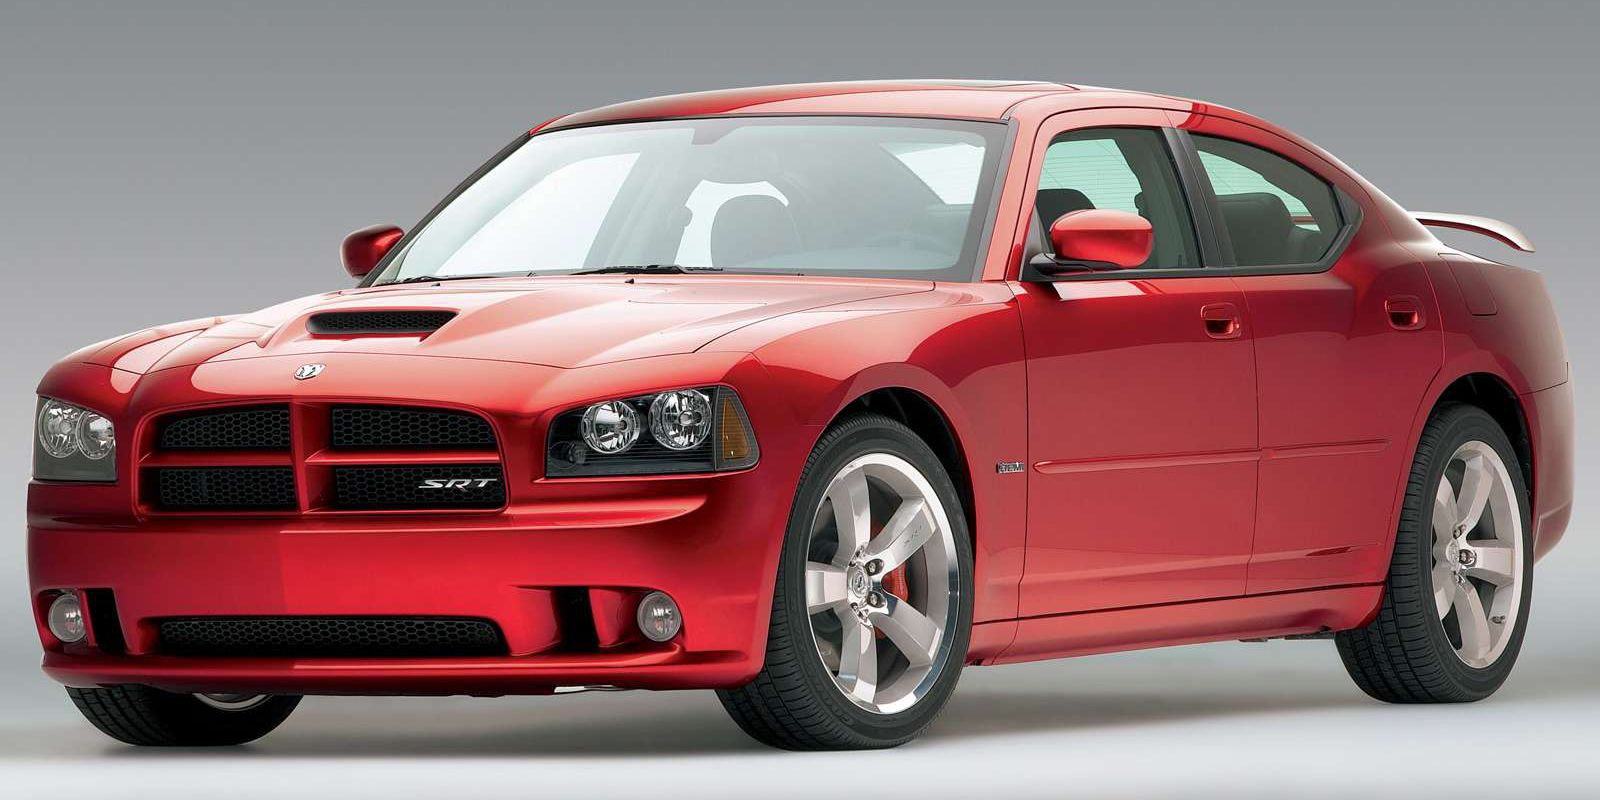 10 Ways to Get at Least 400 Horsepower for Less Than $10,000